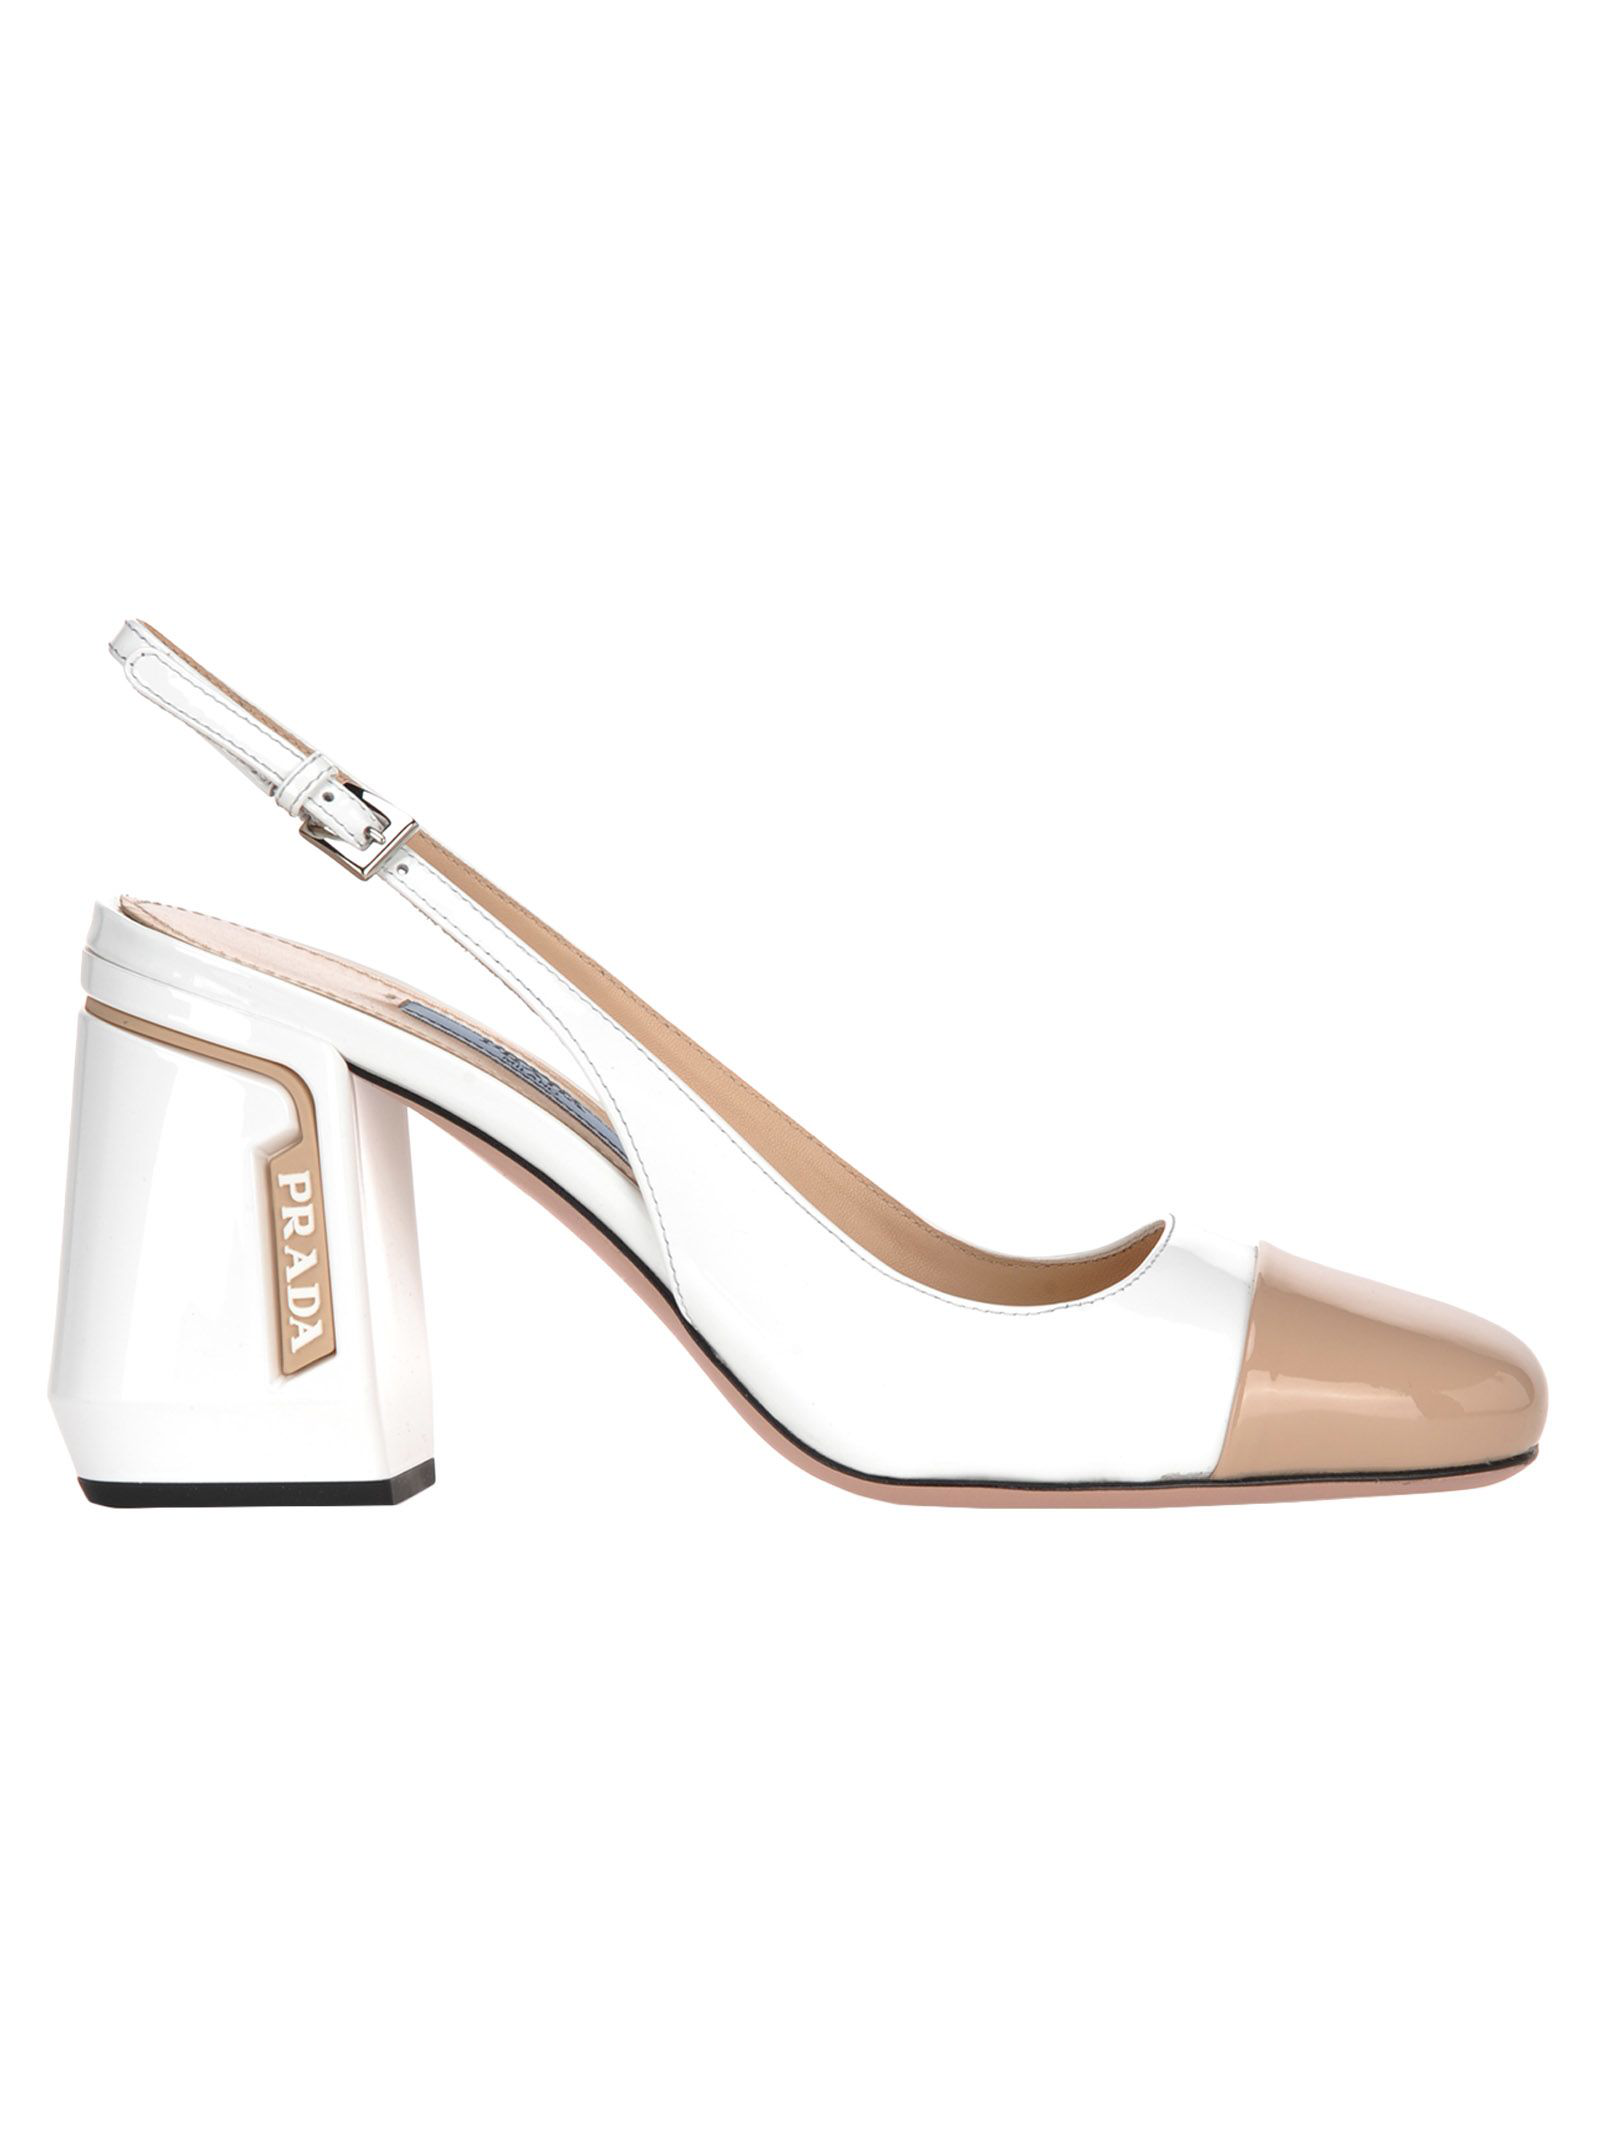 971d51ba2ca1 Prada 85 Two-Tone Smooth And Patent-Leather Slingback Pumps In White ...